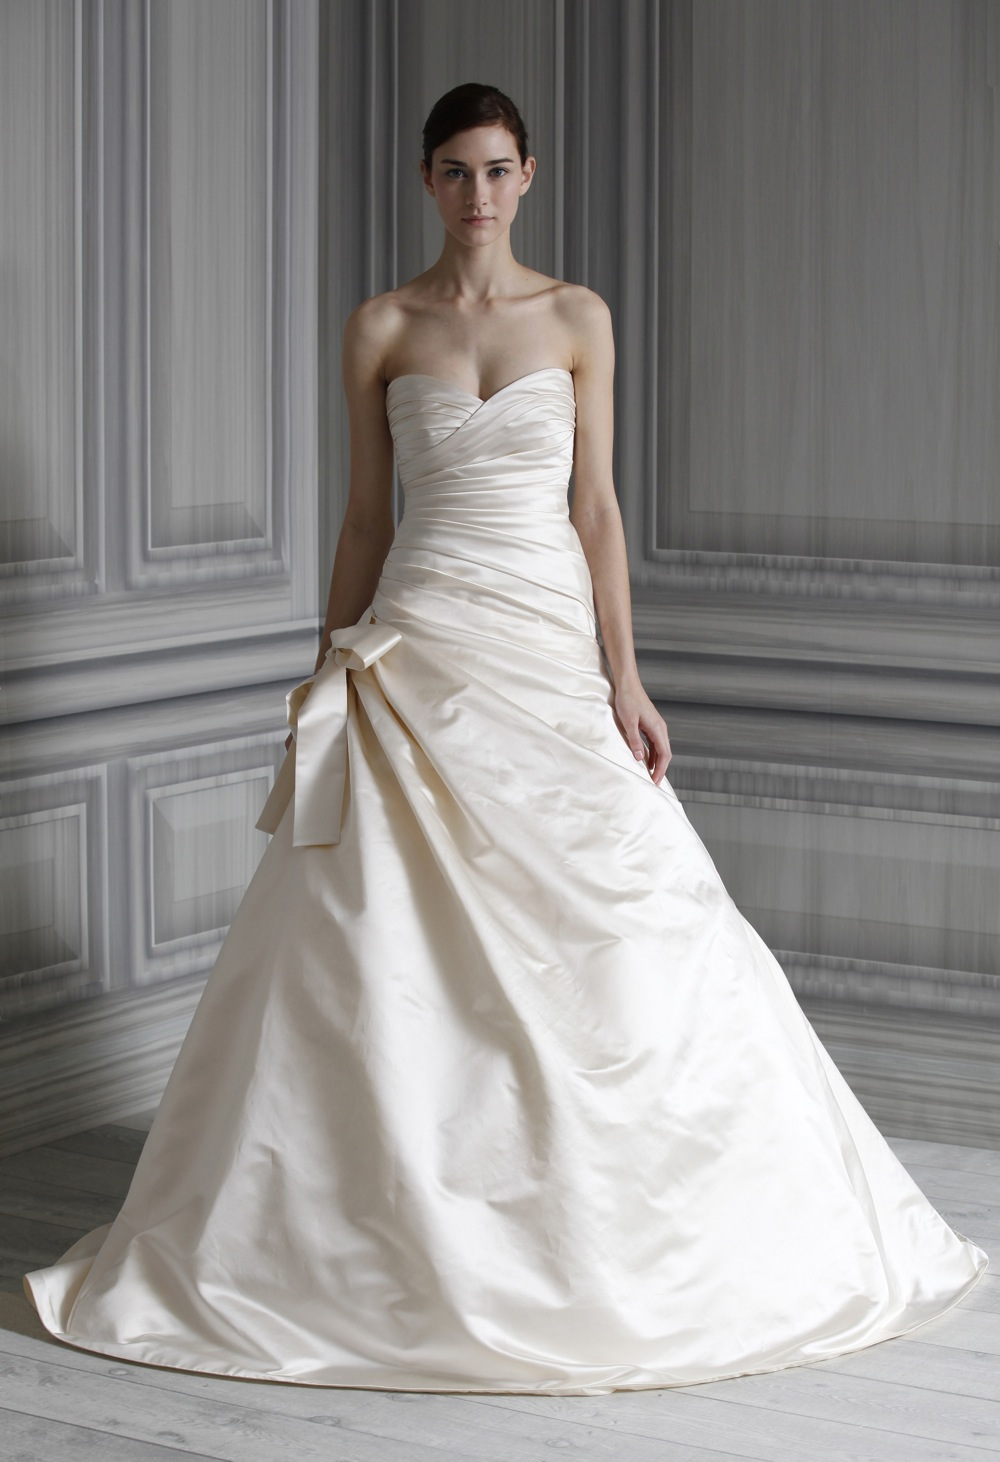 Wedding-dress-monique-lhuillier-bridal-gowns-spring-2012-glory.original